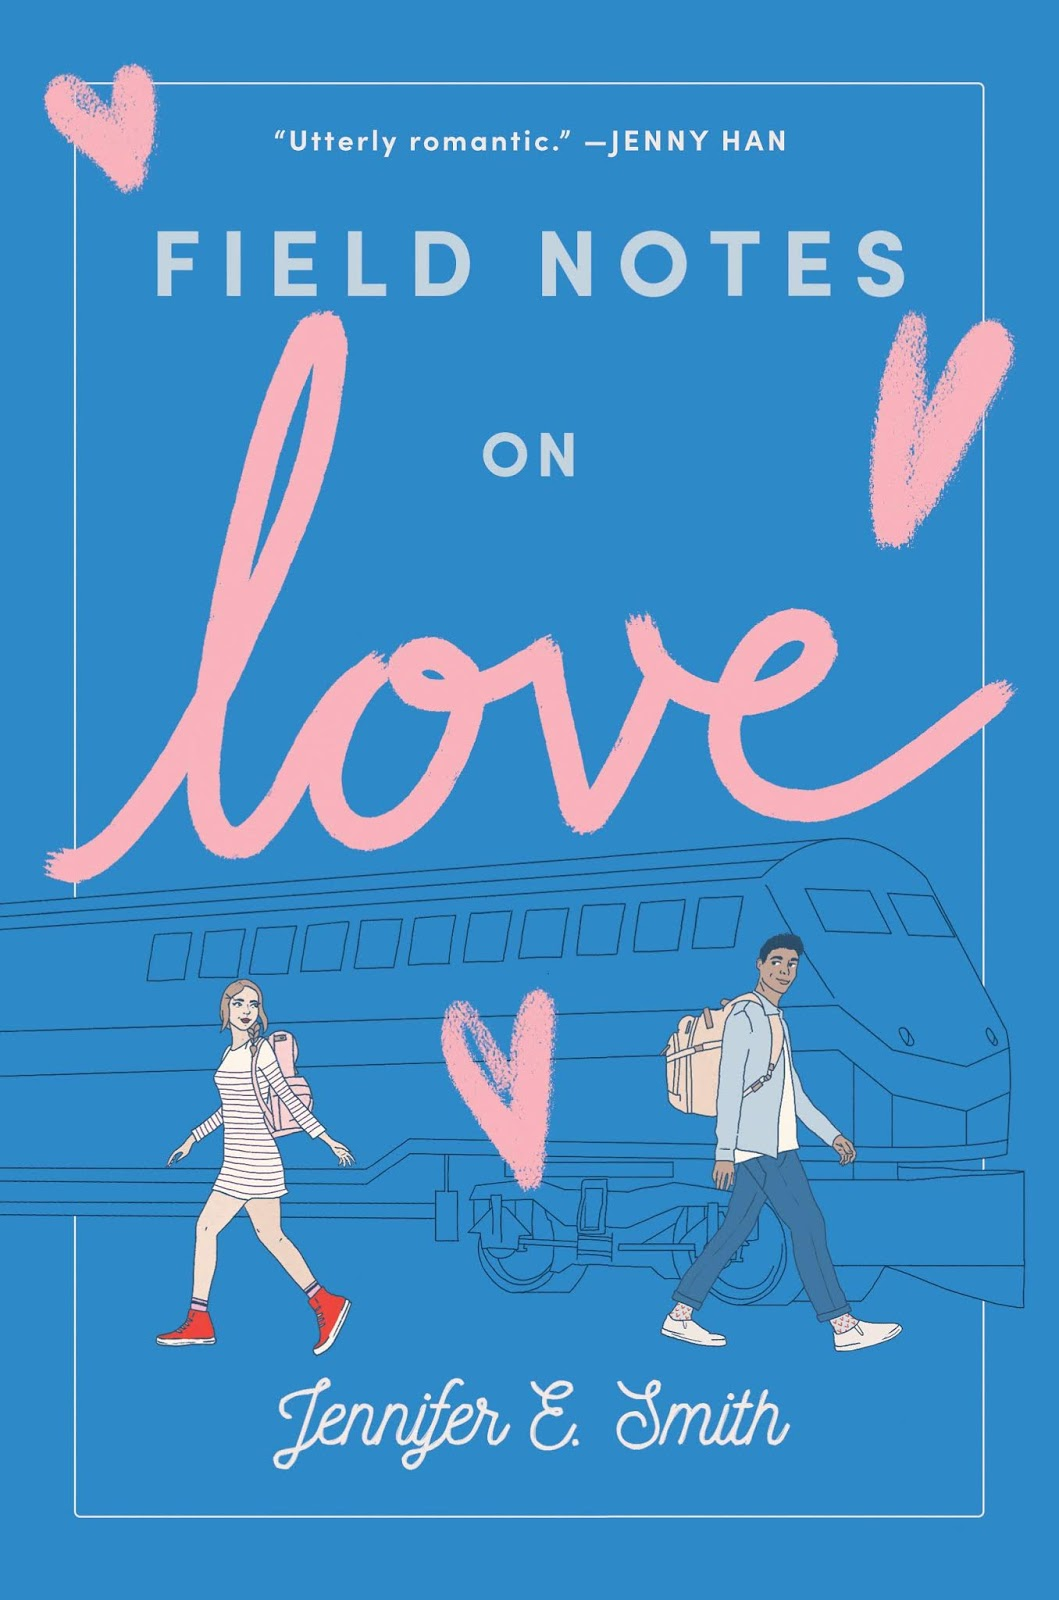 The he loves and epub girl death